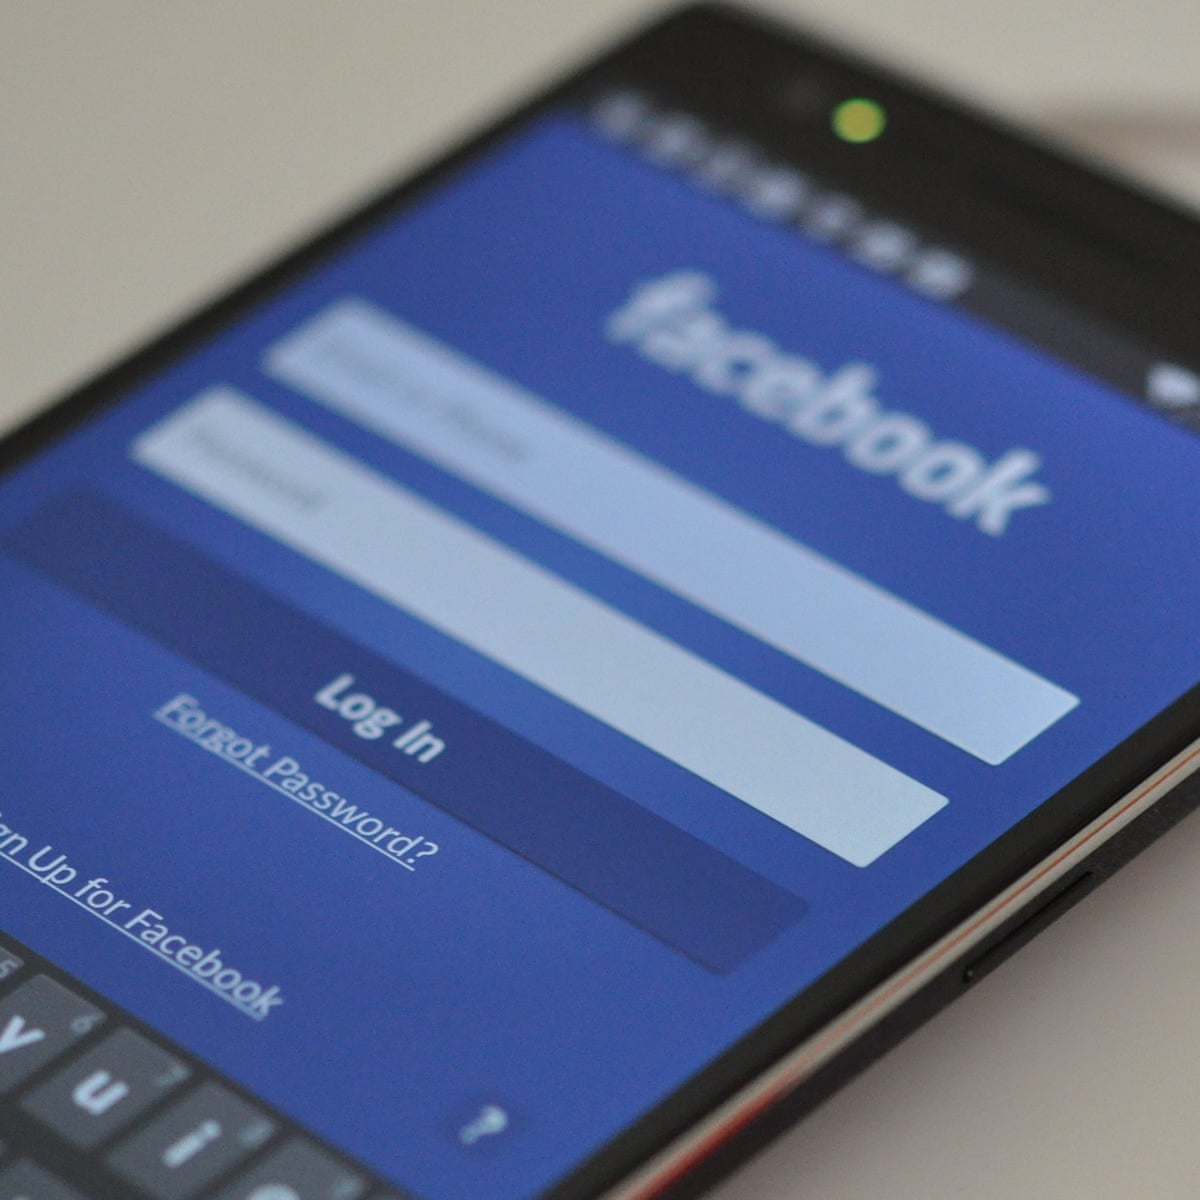 Uninstalling Facebook App Saves Up To 20 Of Android Battery Life Facebook The Guardian